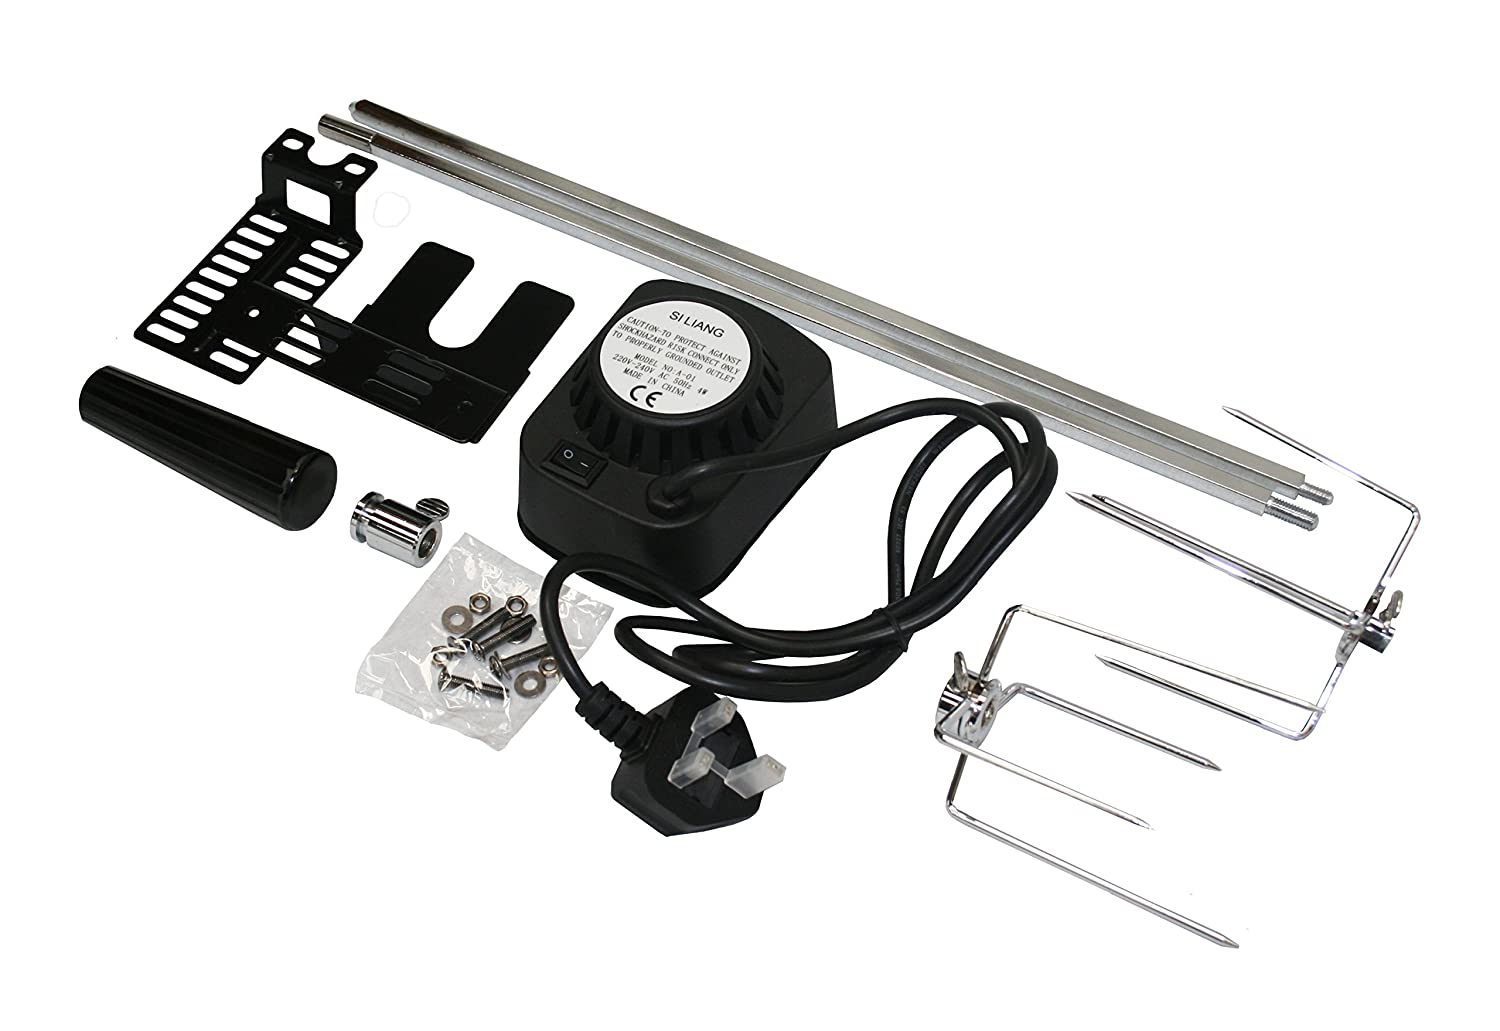 BBQ BARBECUE ROTISSERIE SPIT UNIVERSAL KIT GAS OR CHARCOAL ELECTRIC (36 Inch Skewer) (41 Inch Skewer) SunshineBBQs Ltd